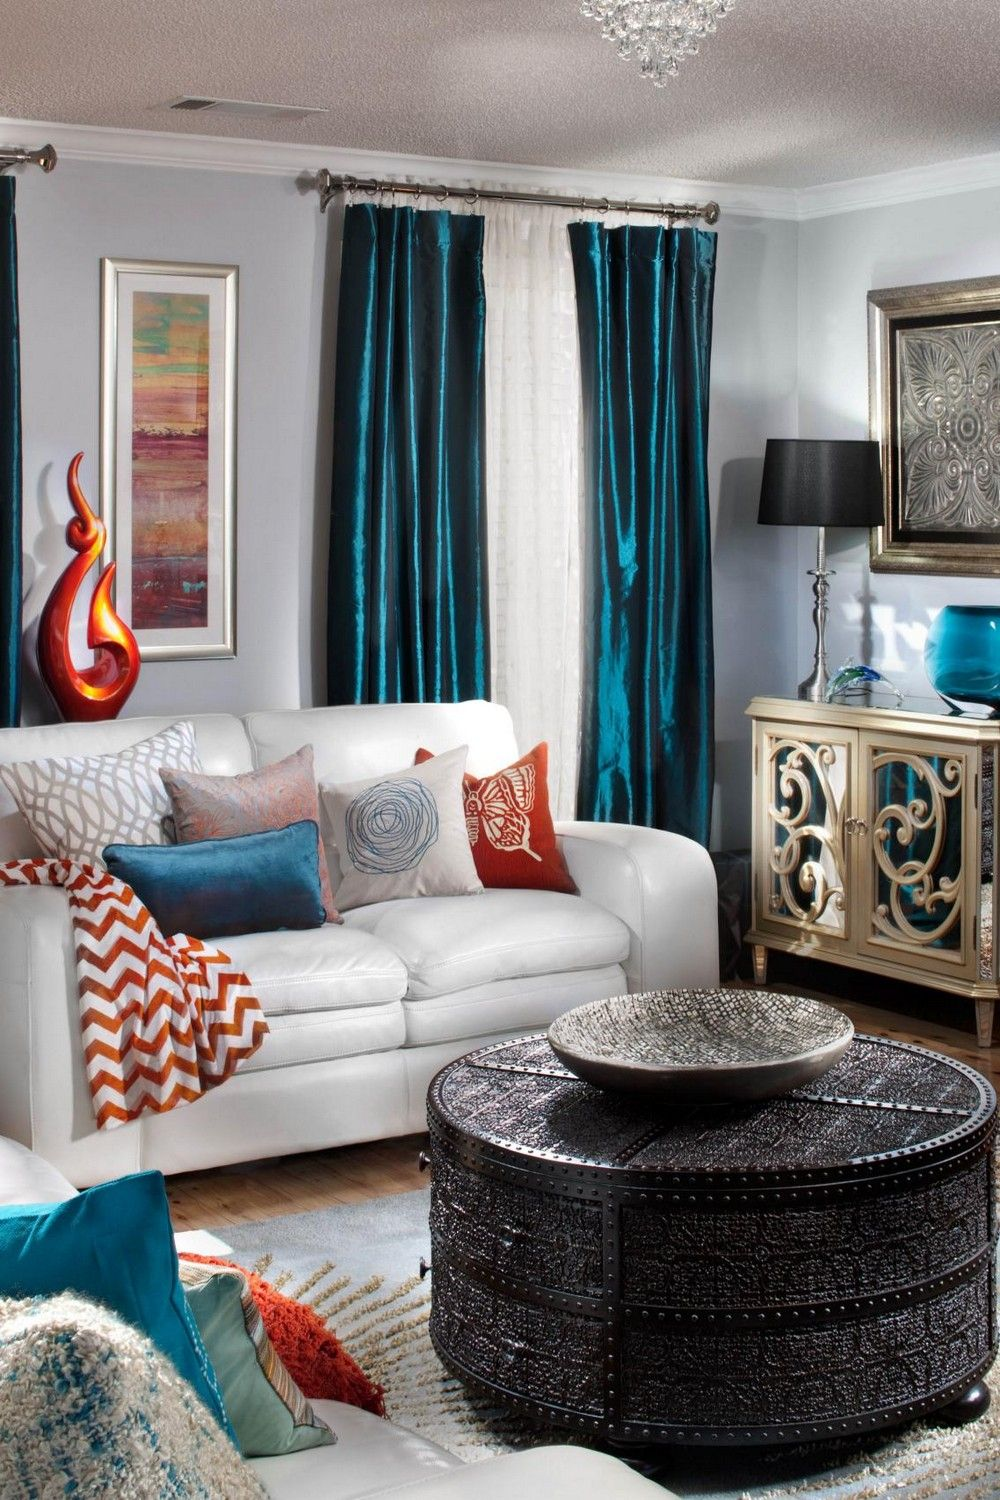 Room Ideas In 2020 Teal And Orange Living Room Decor Living Room Grey Living Room Orange #teal #and #rust #living #room